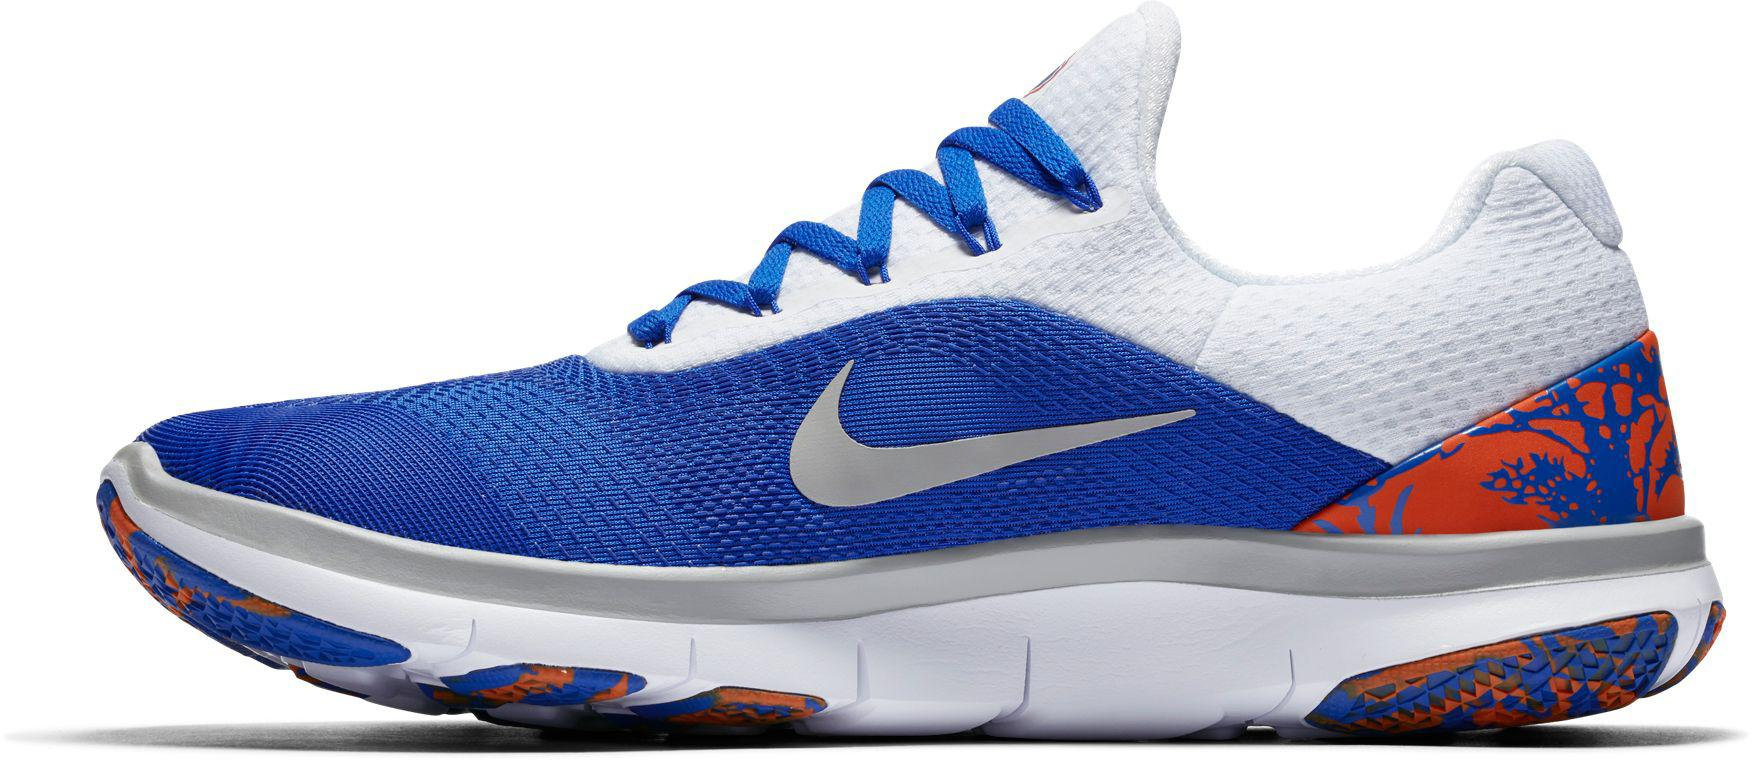 fd79c6fec6e5 Nike - Blue Free Trainer V7 Week Zero Florida Edition Training Shoes for Men  - Lyst